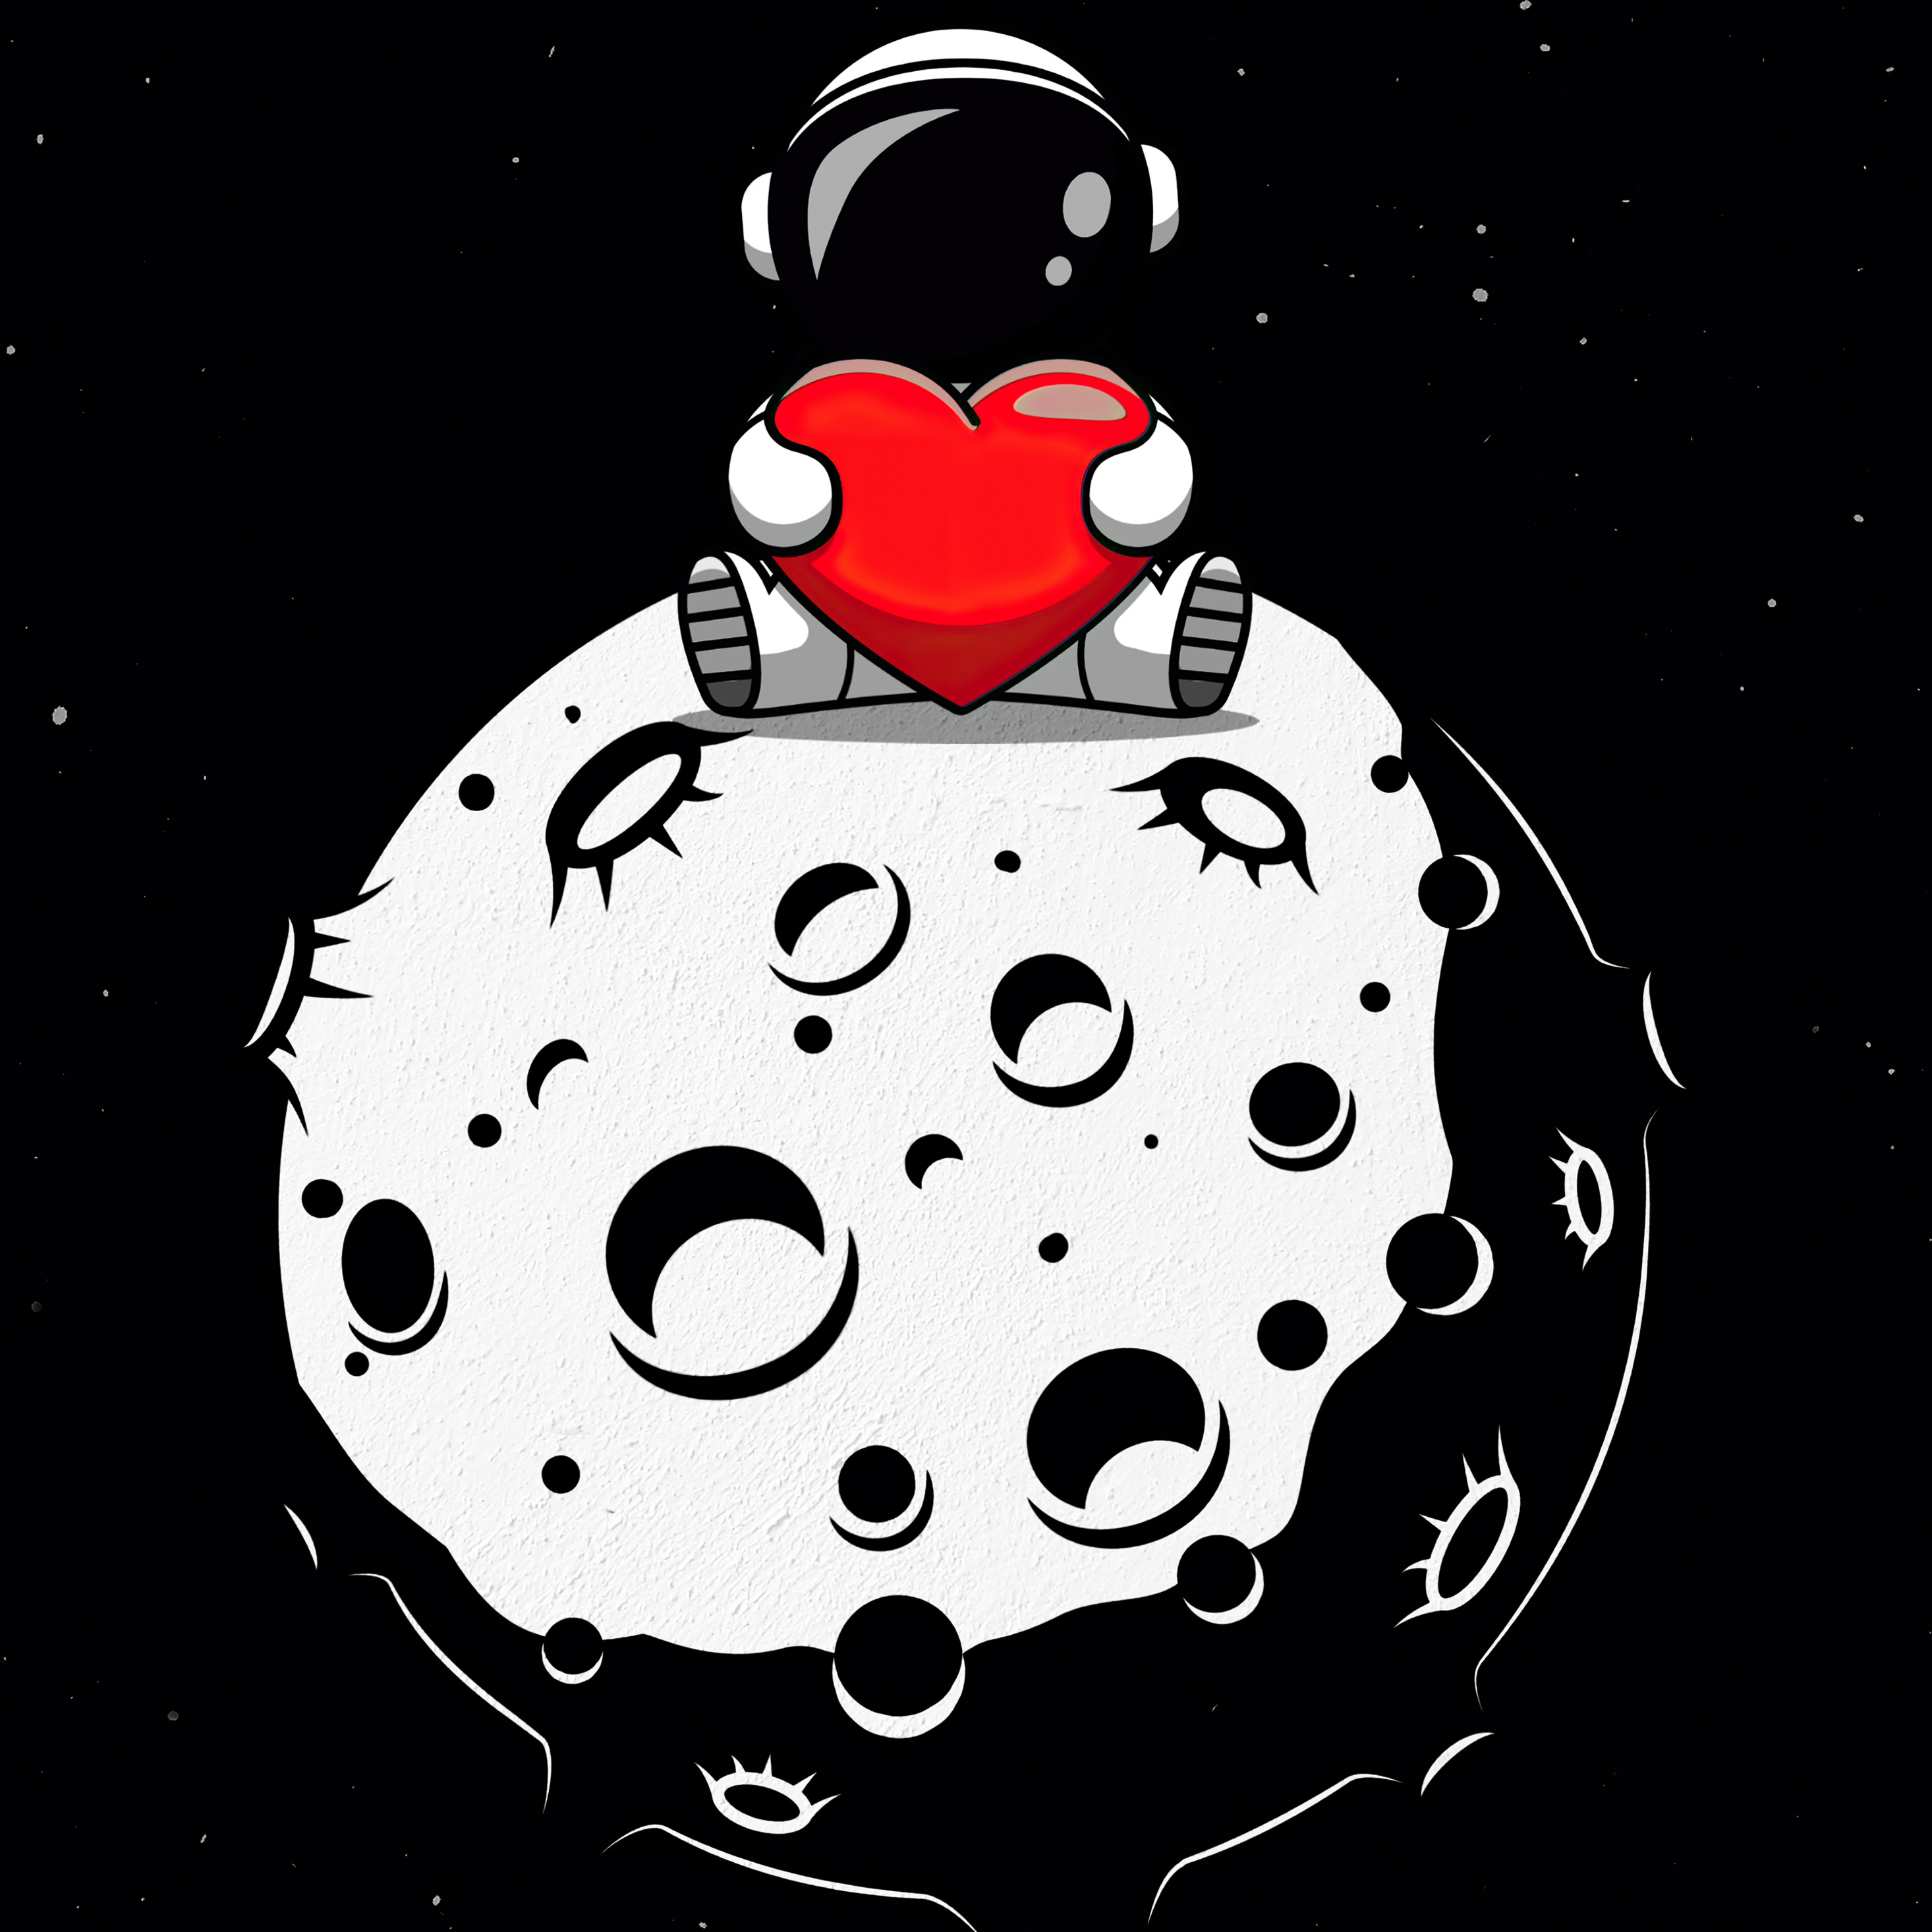 little-astronaut-on-moon-with-heart-in-hand-5k-0o.jpg